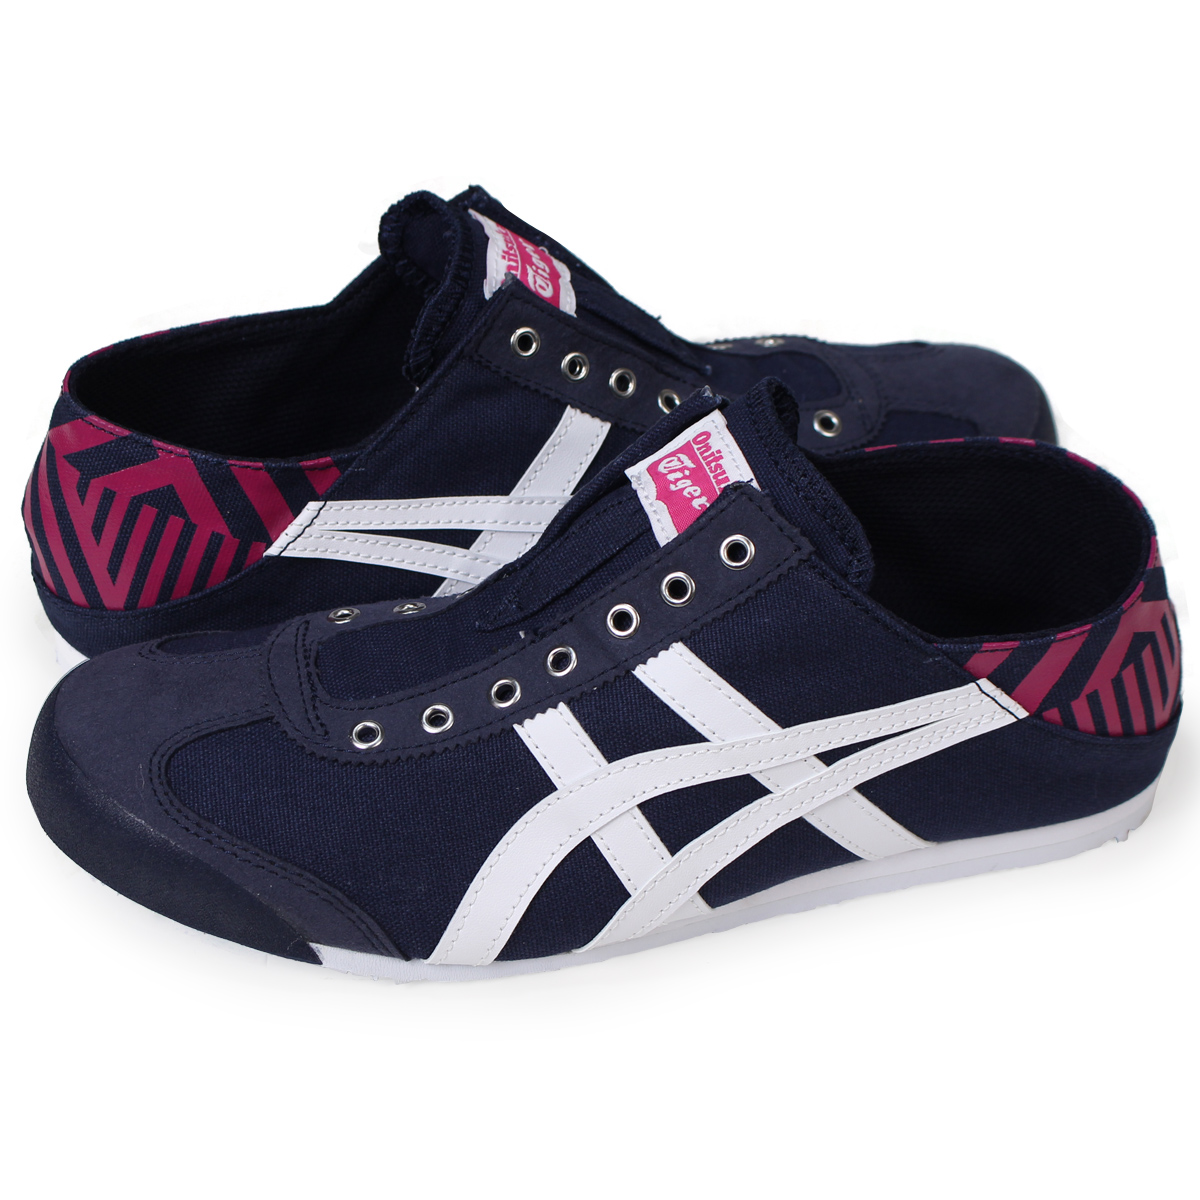 reputable site 5ea81 12f53 Onitsuka Tiger MEXICO 66 PARATY Onitsuka tiger Mexico 66 slip-ons men gap  Dis sneakers TH342N-5801 navy